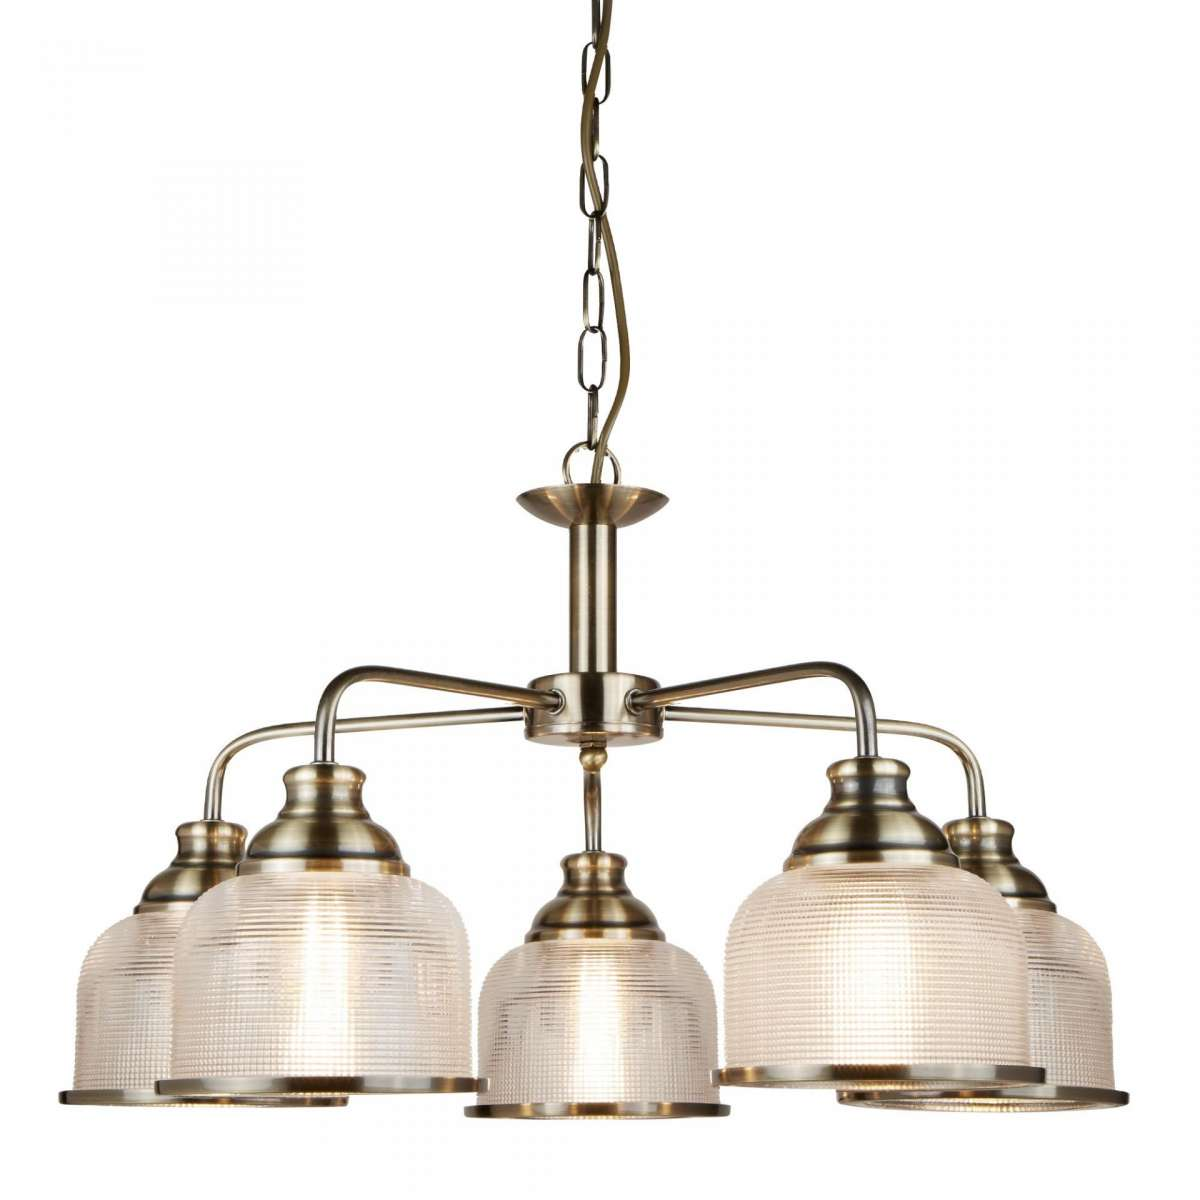 Bistro II 5 Light Ceiling Antique Brass With Halophane Glass